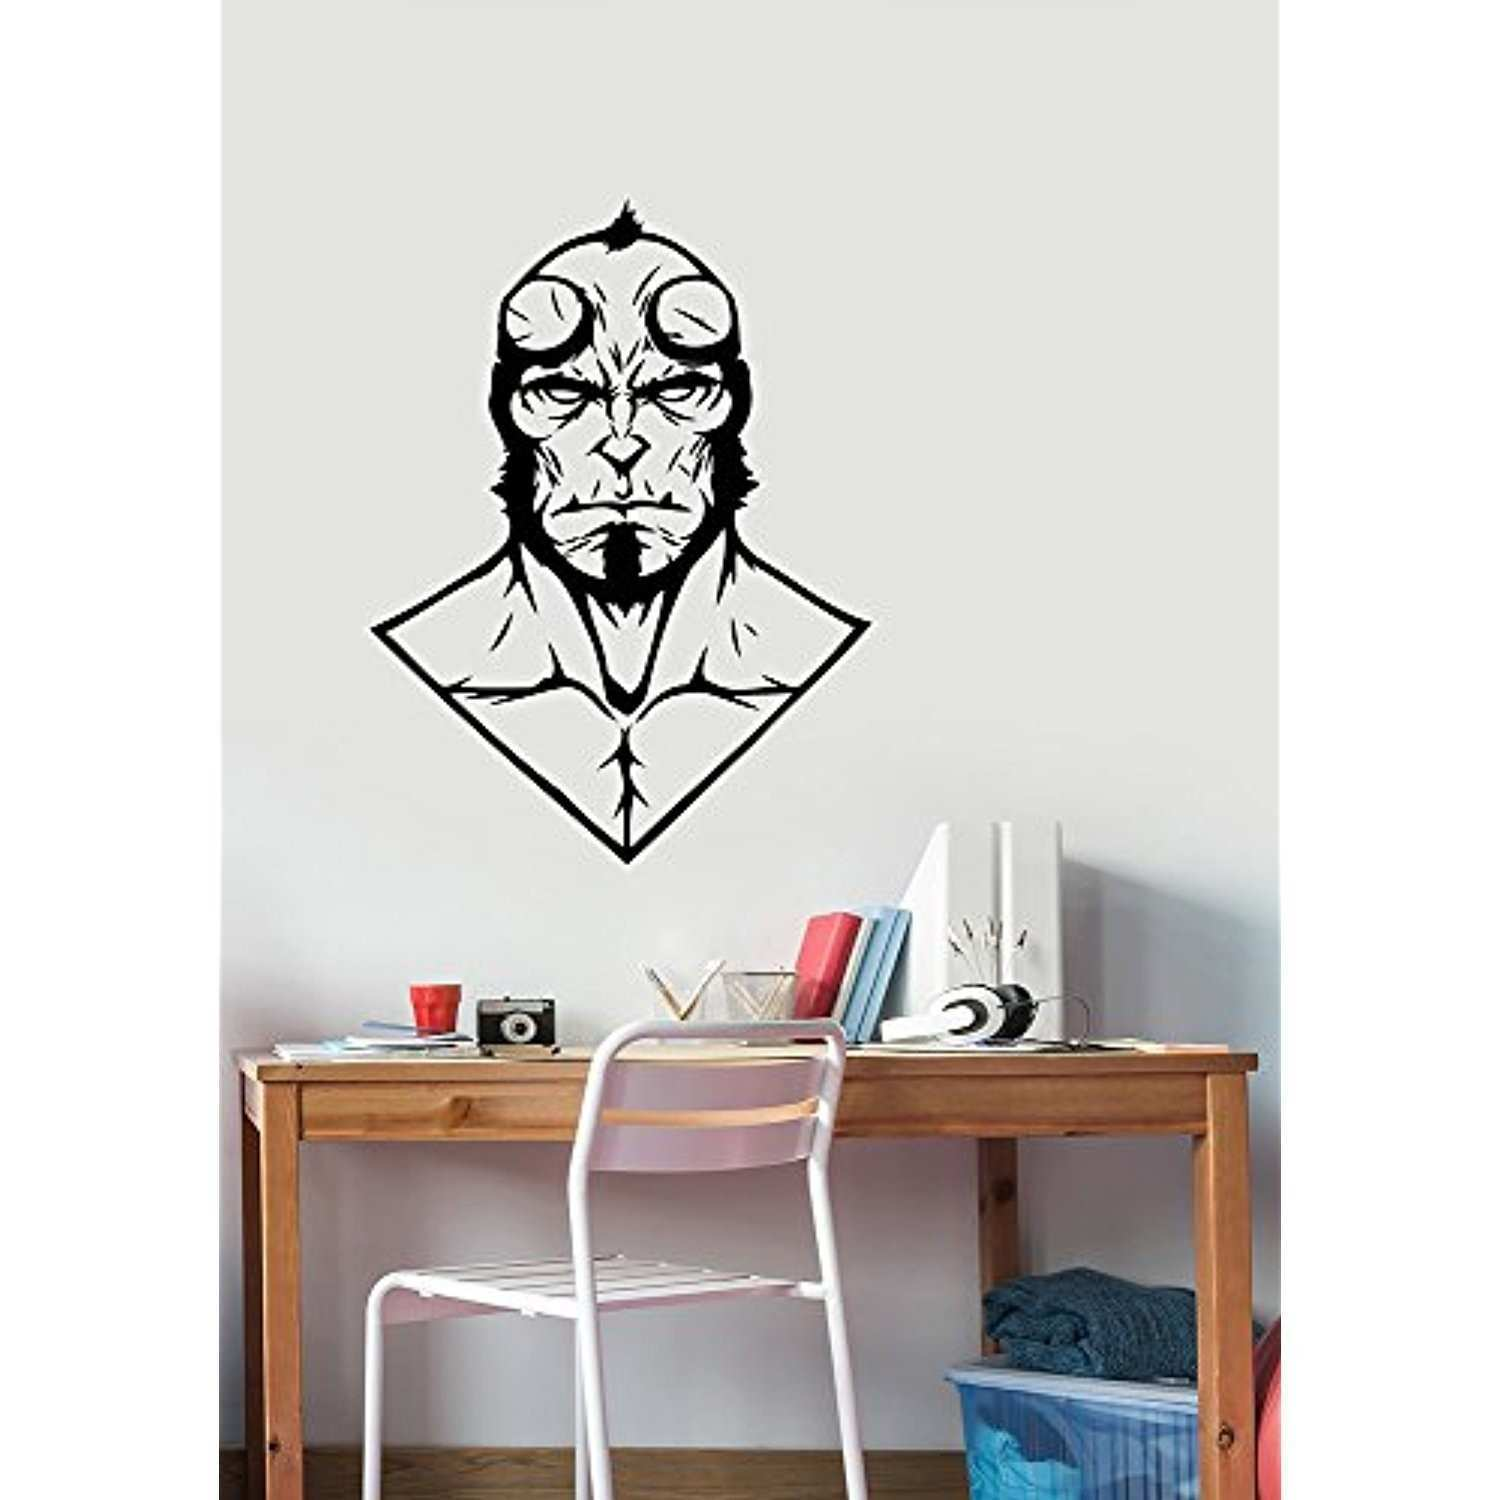 Awesome Wall Decals for Entryway